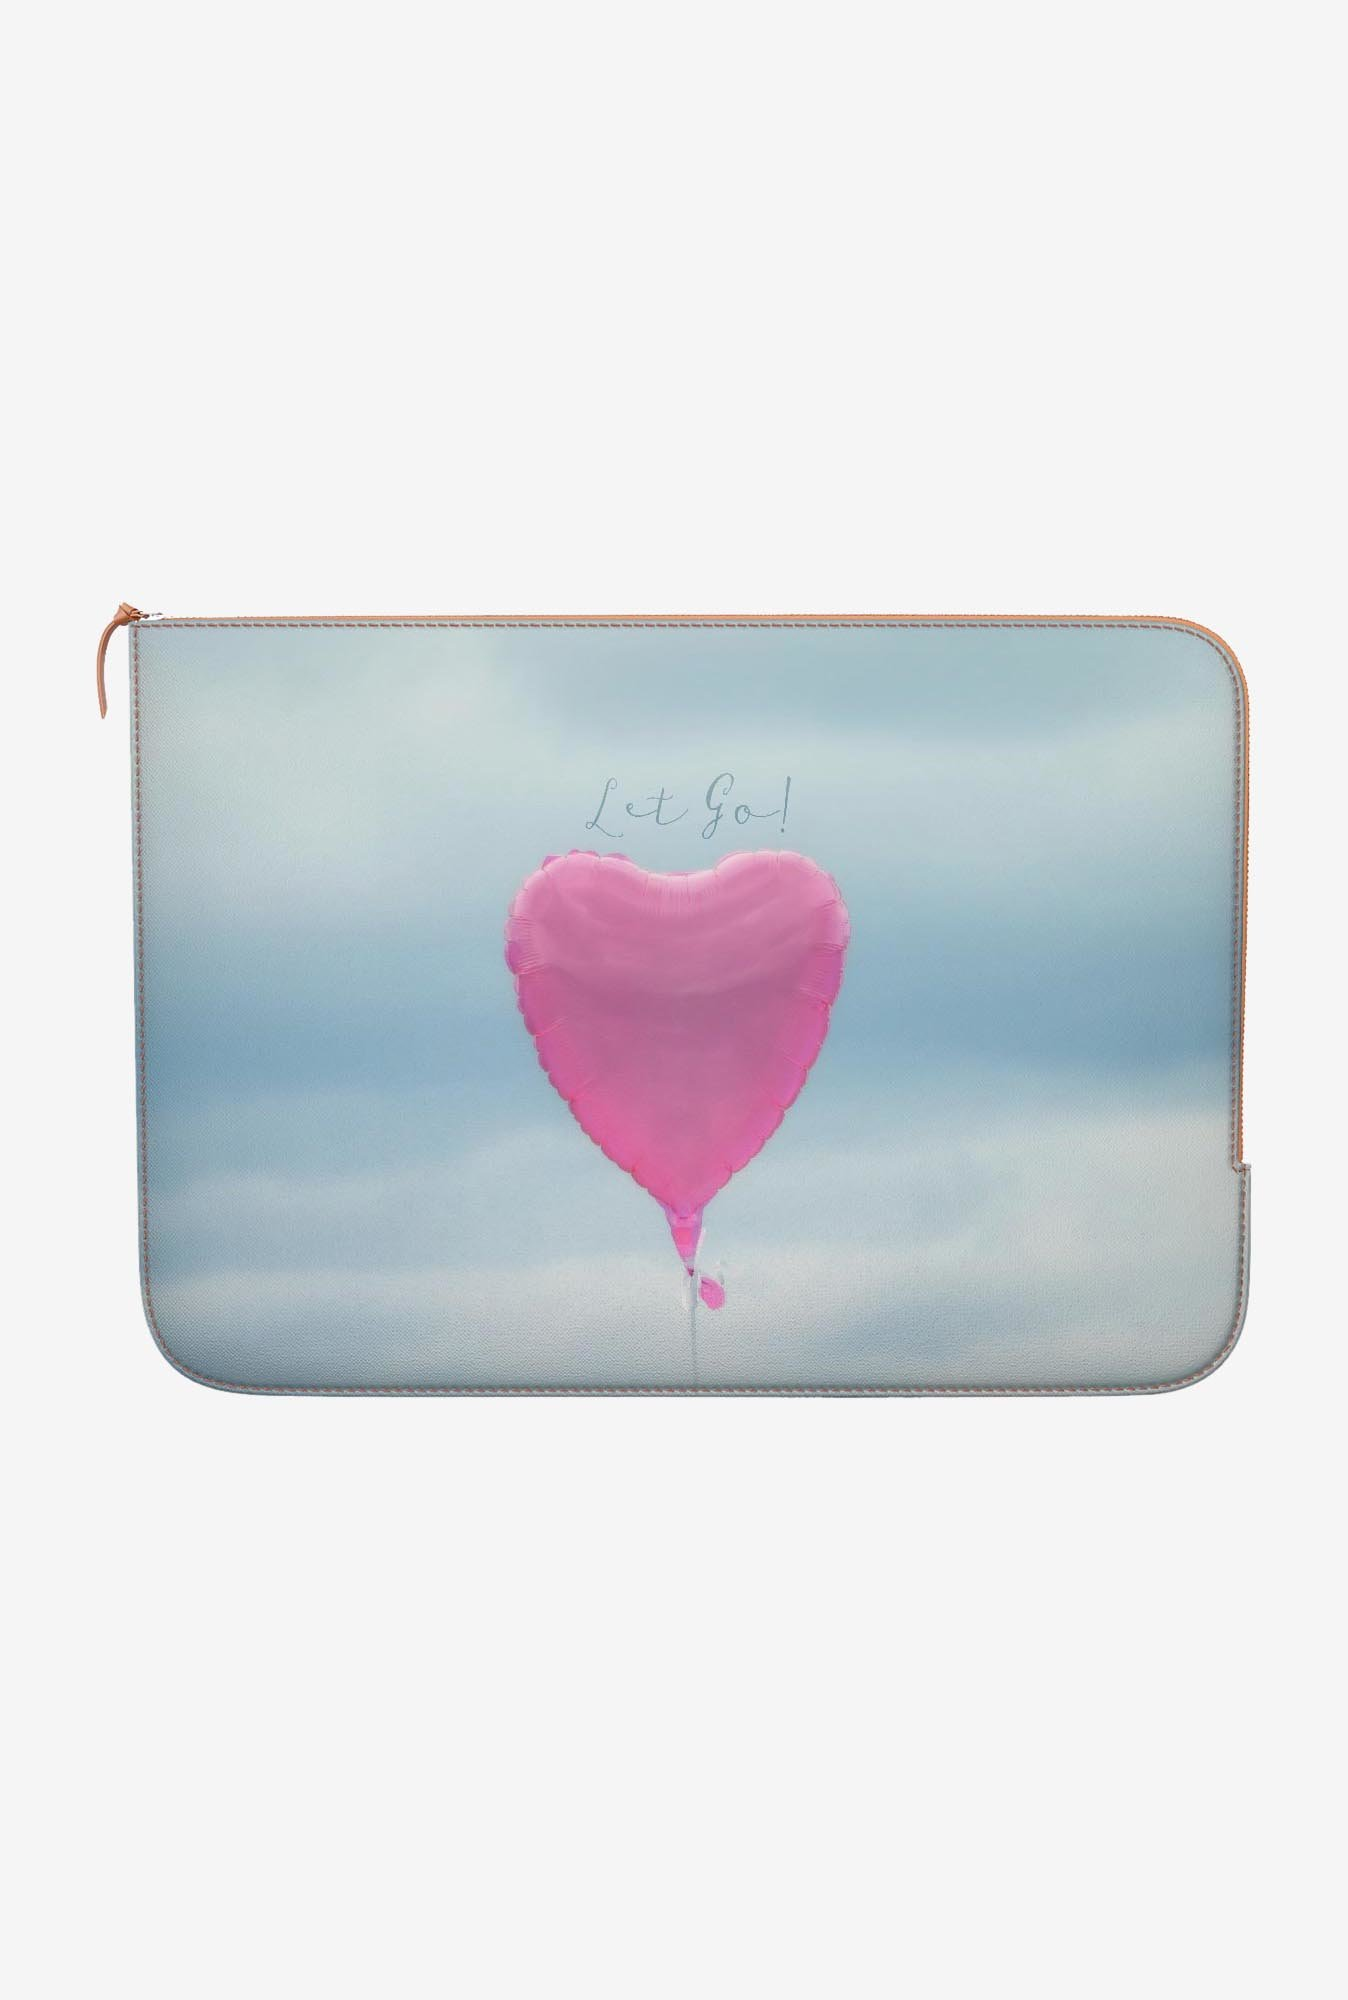 DailyObjects Let Go MacBook Air 11 Zippered Sleeve